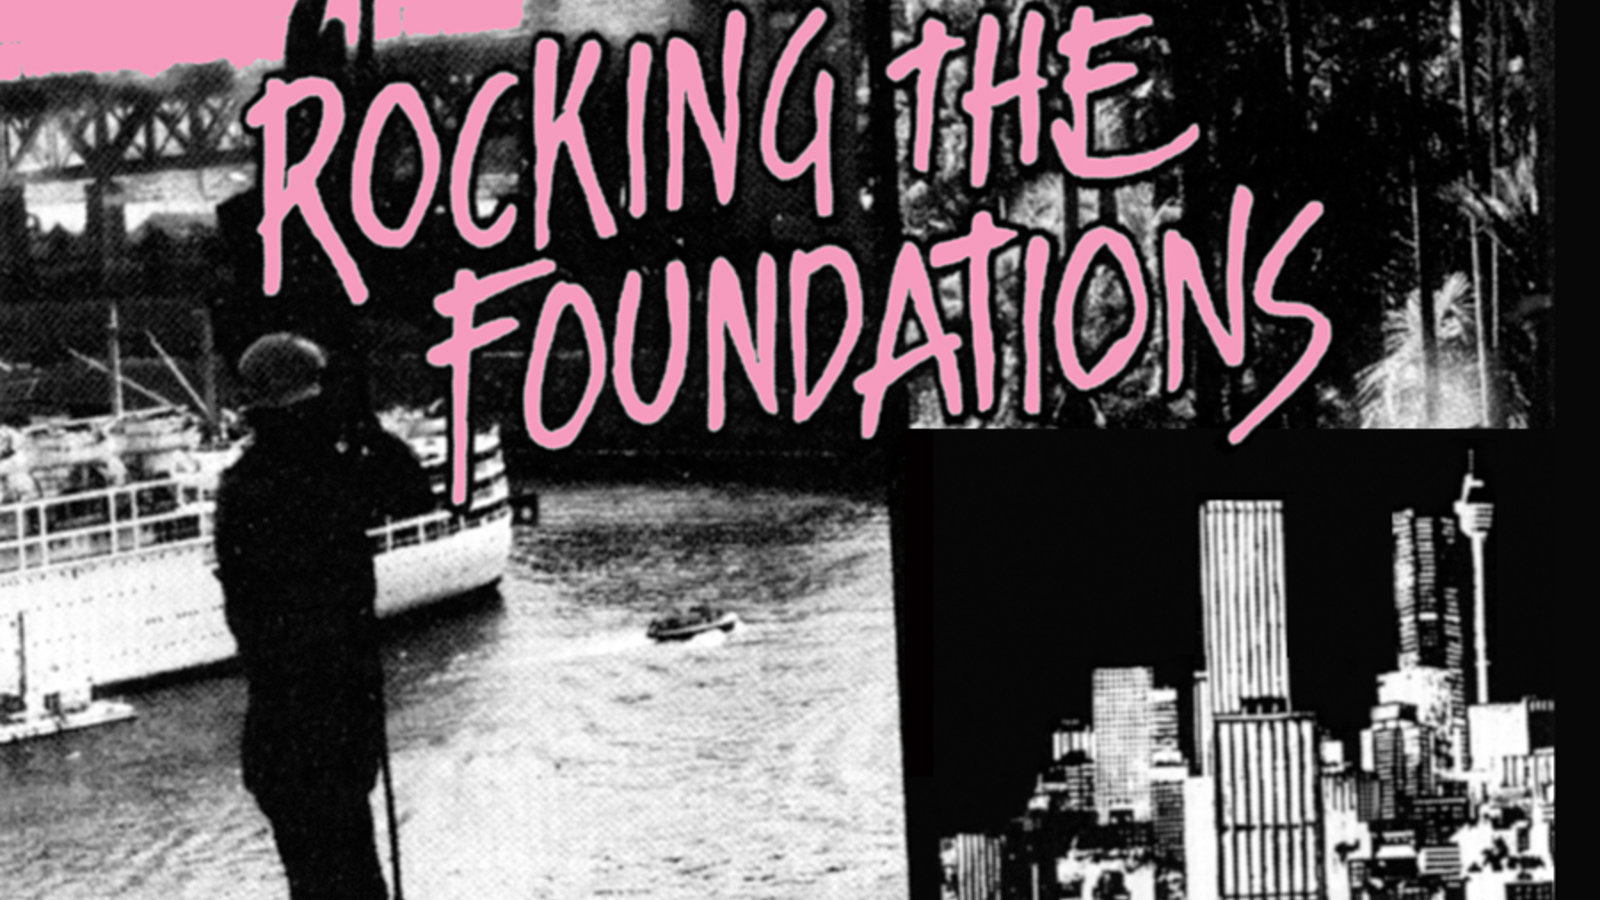 rocking_the_foundations.jpg